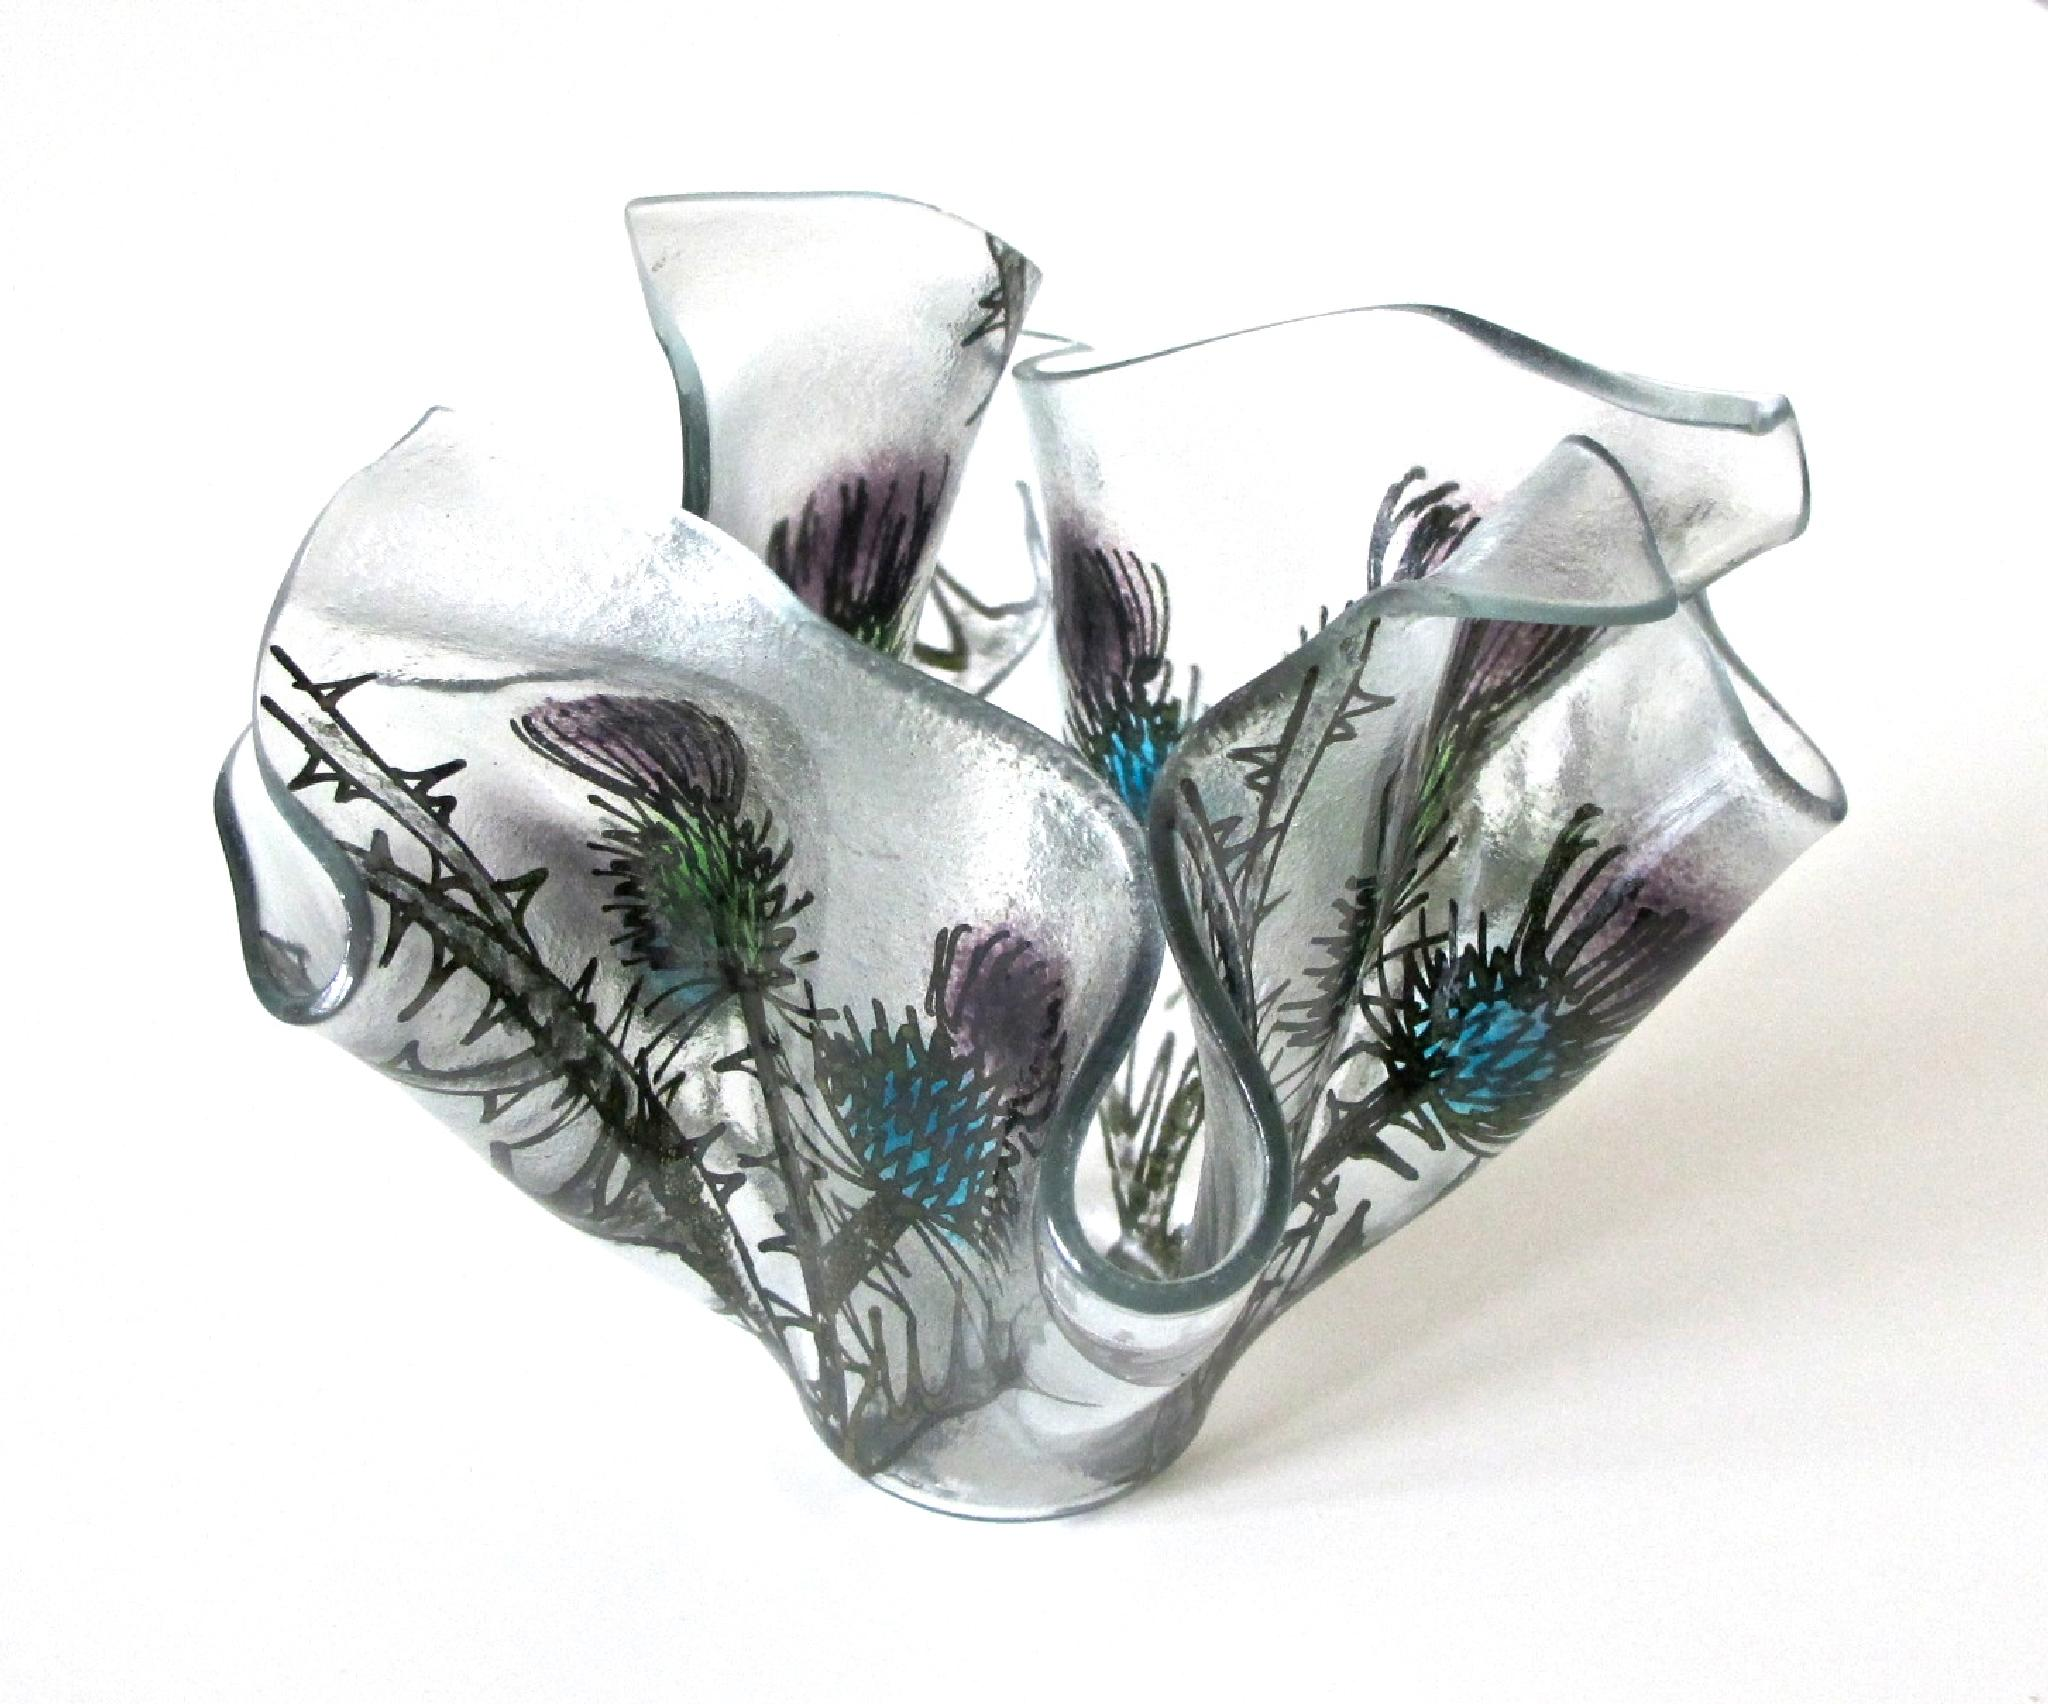 Thistle Handkerchief Vase by Carrie Paxton